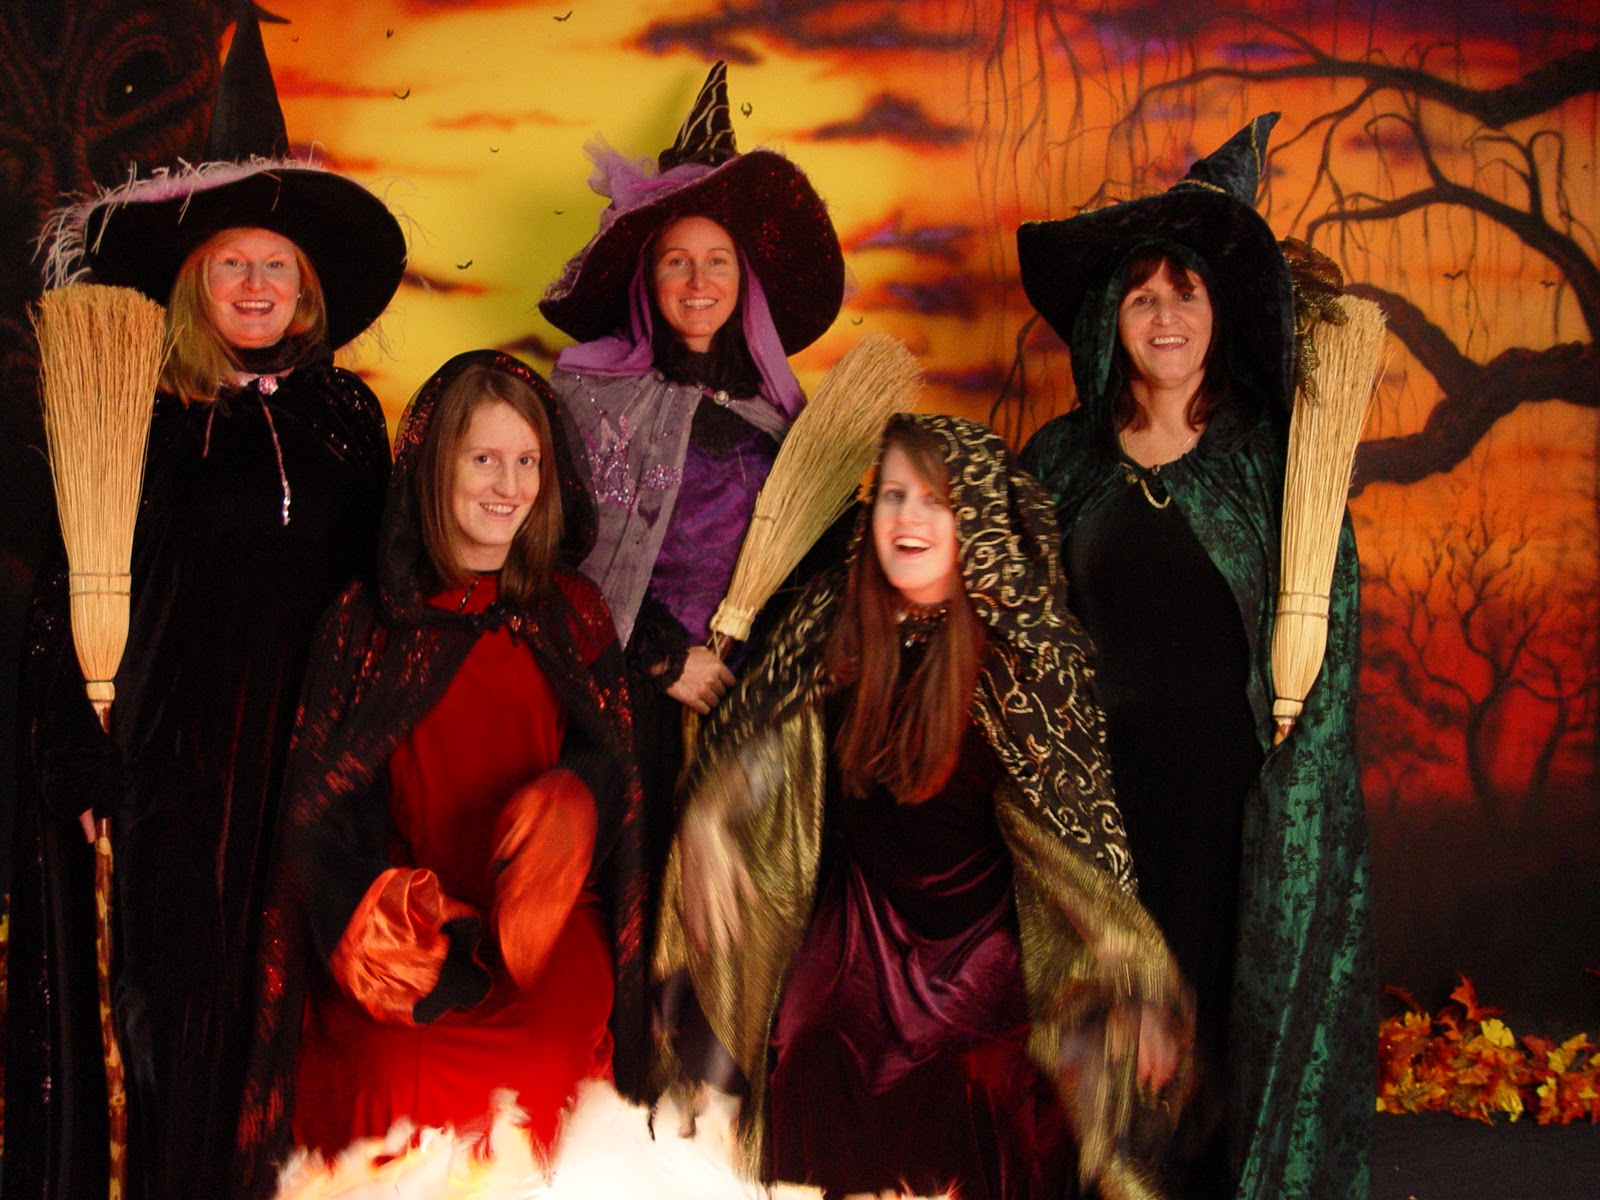 Must see Wallpaper Halloween Hocus Pocus - withes+of+salem  2018_76755.jpg